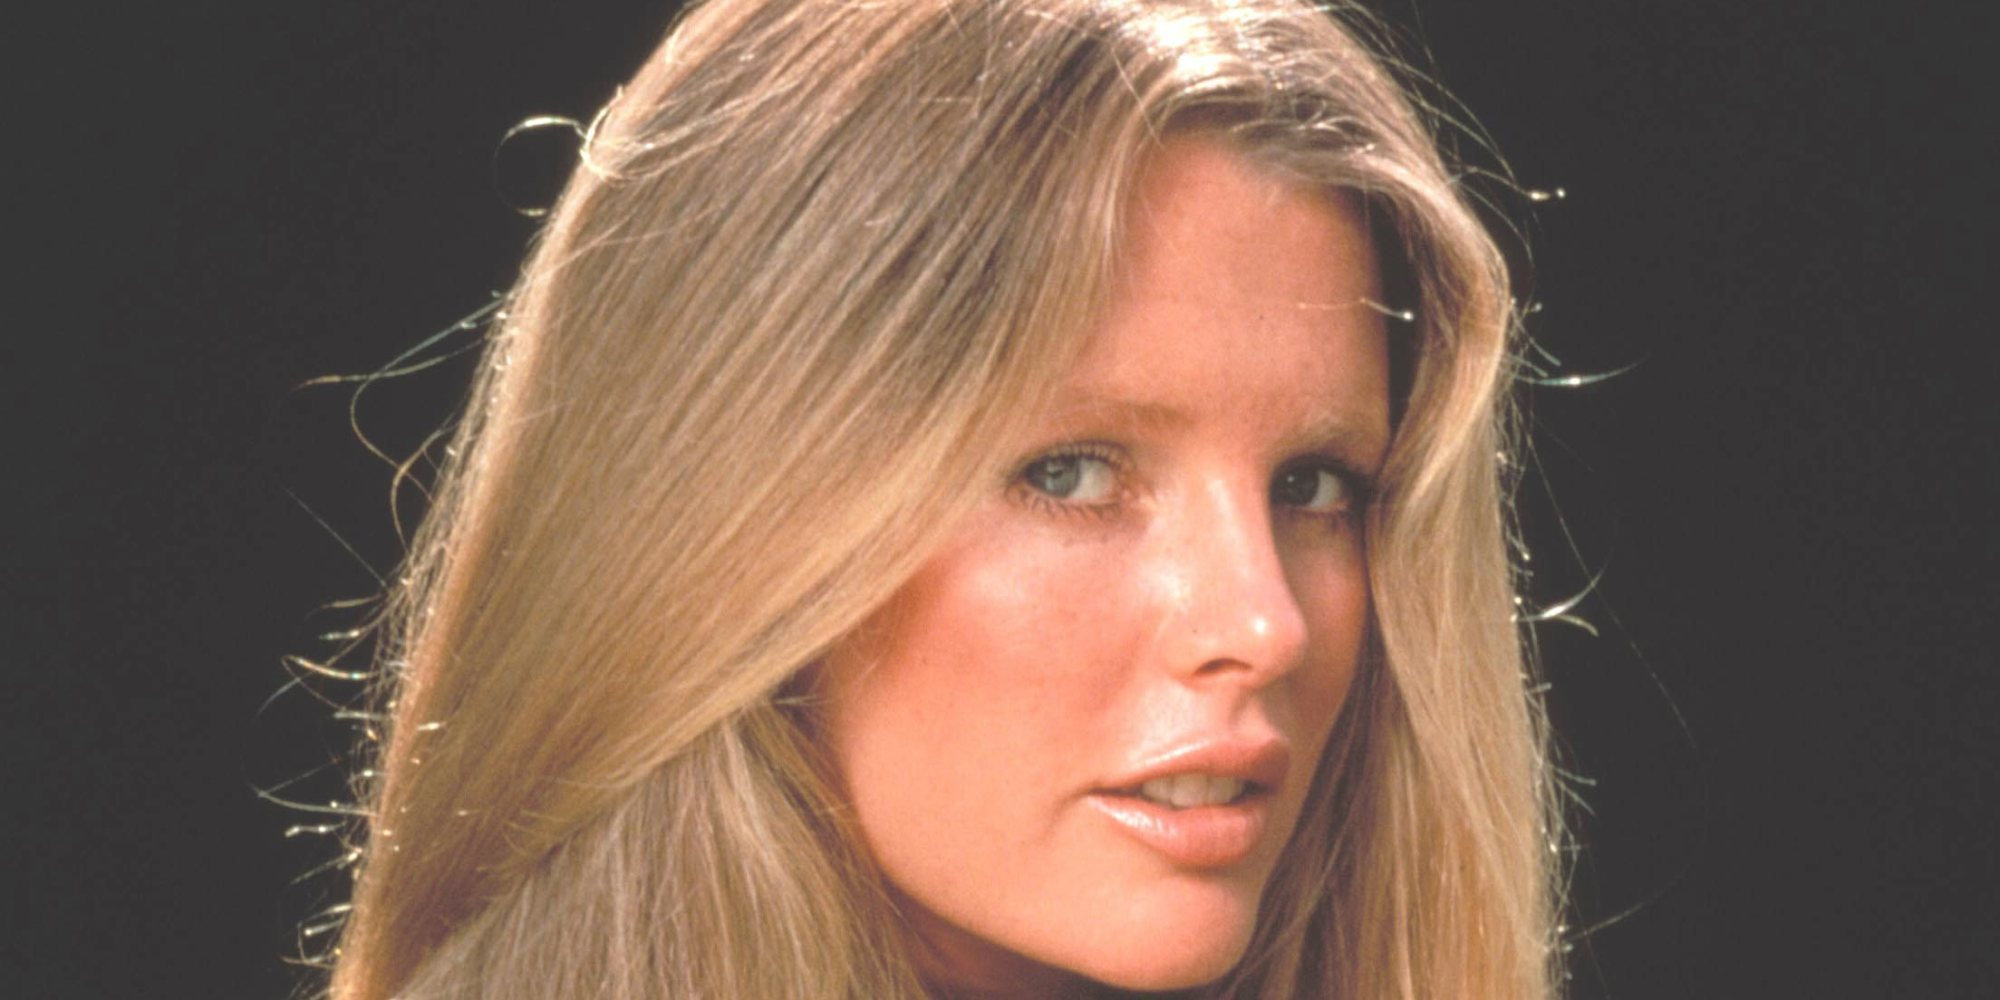 Kim Basinger as Dagny Taggart? - The Soul of Atlas